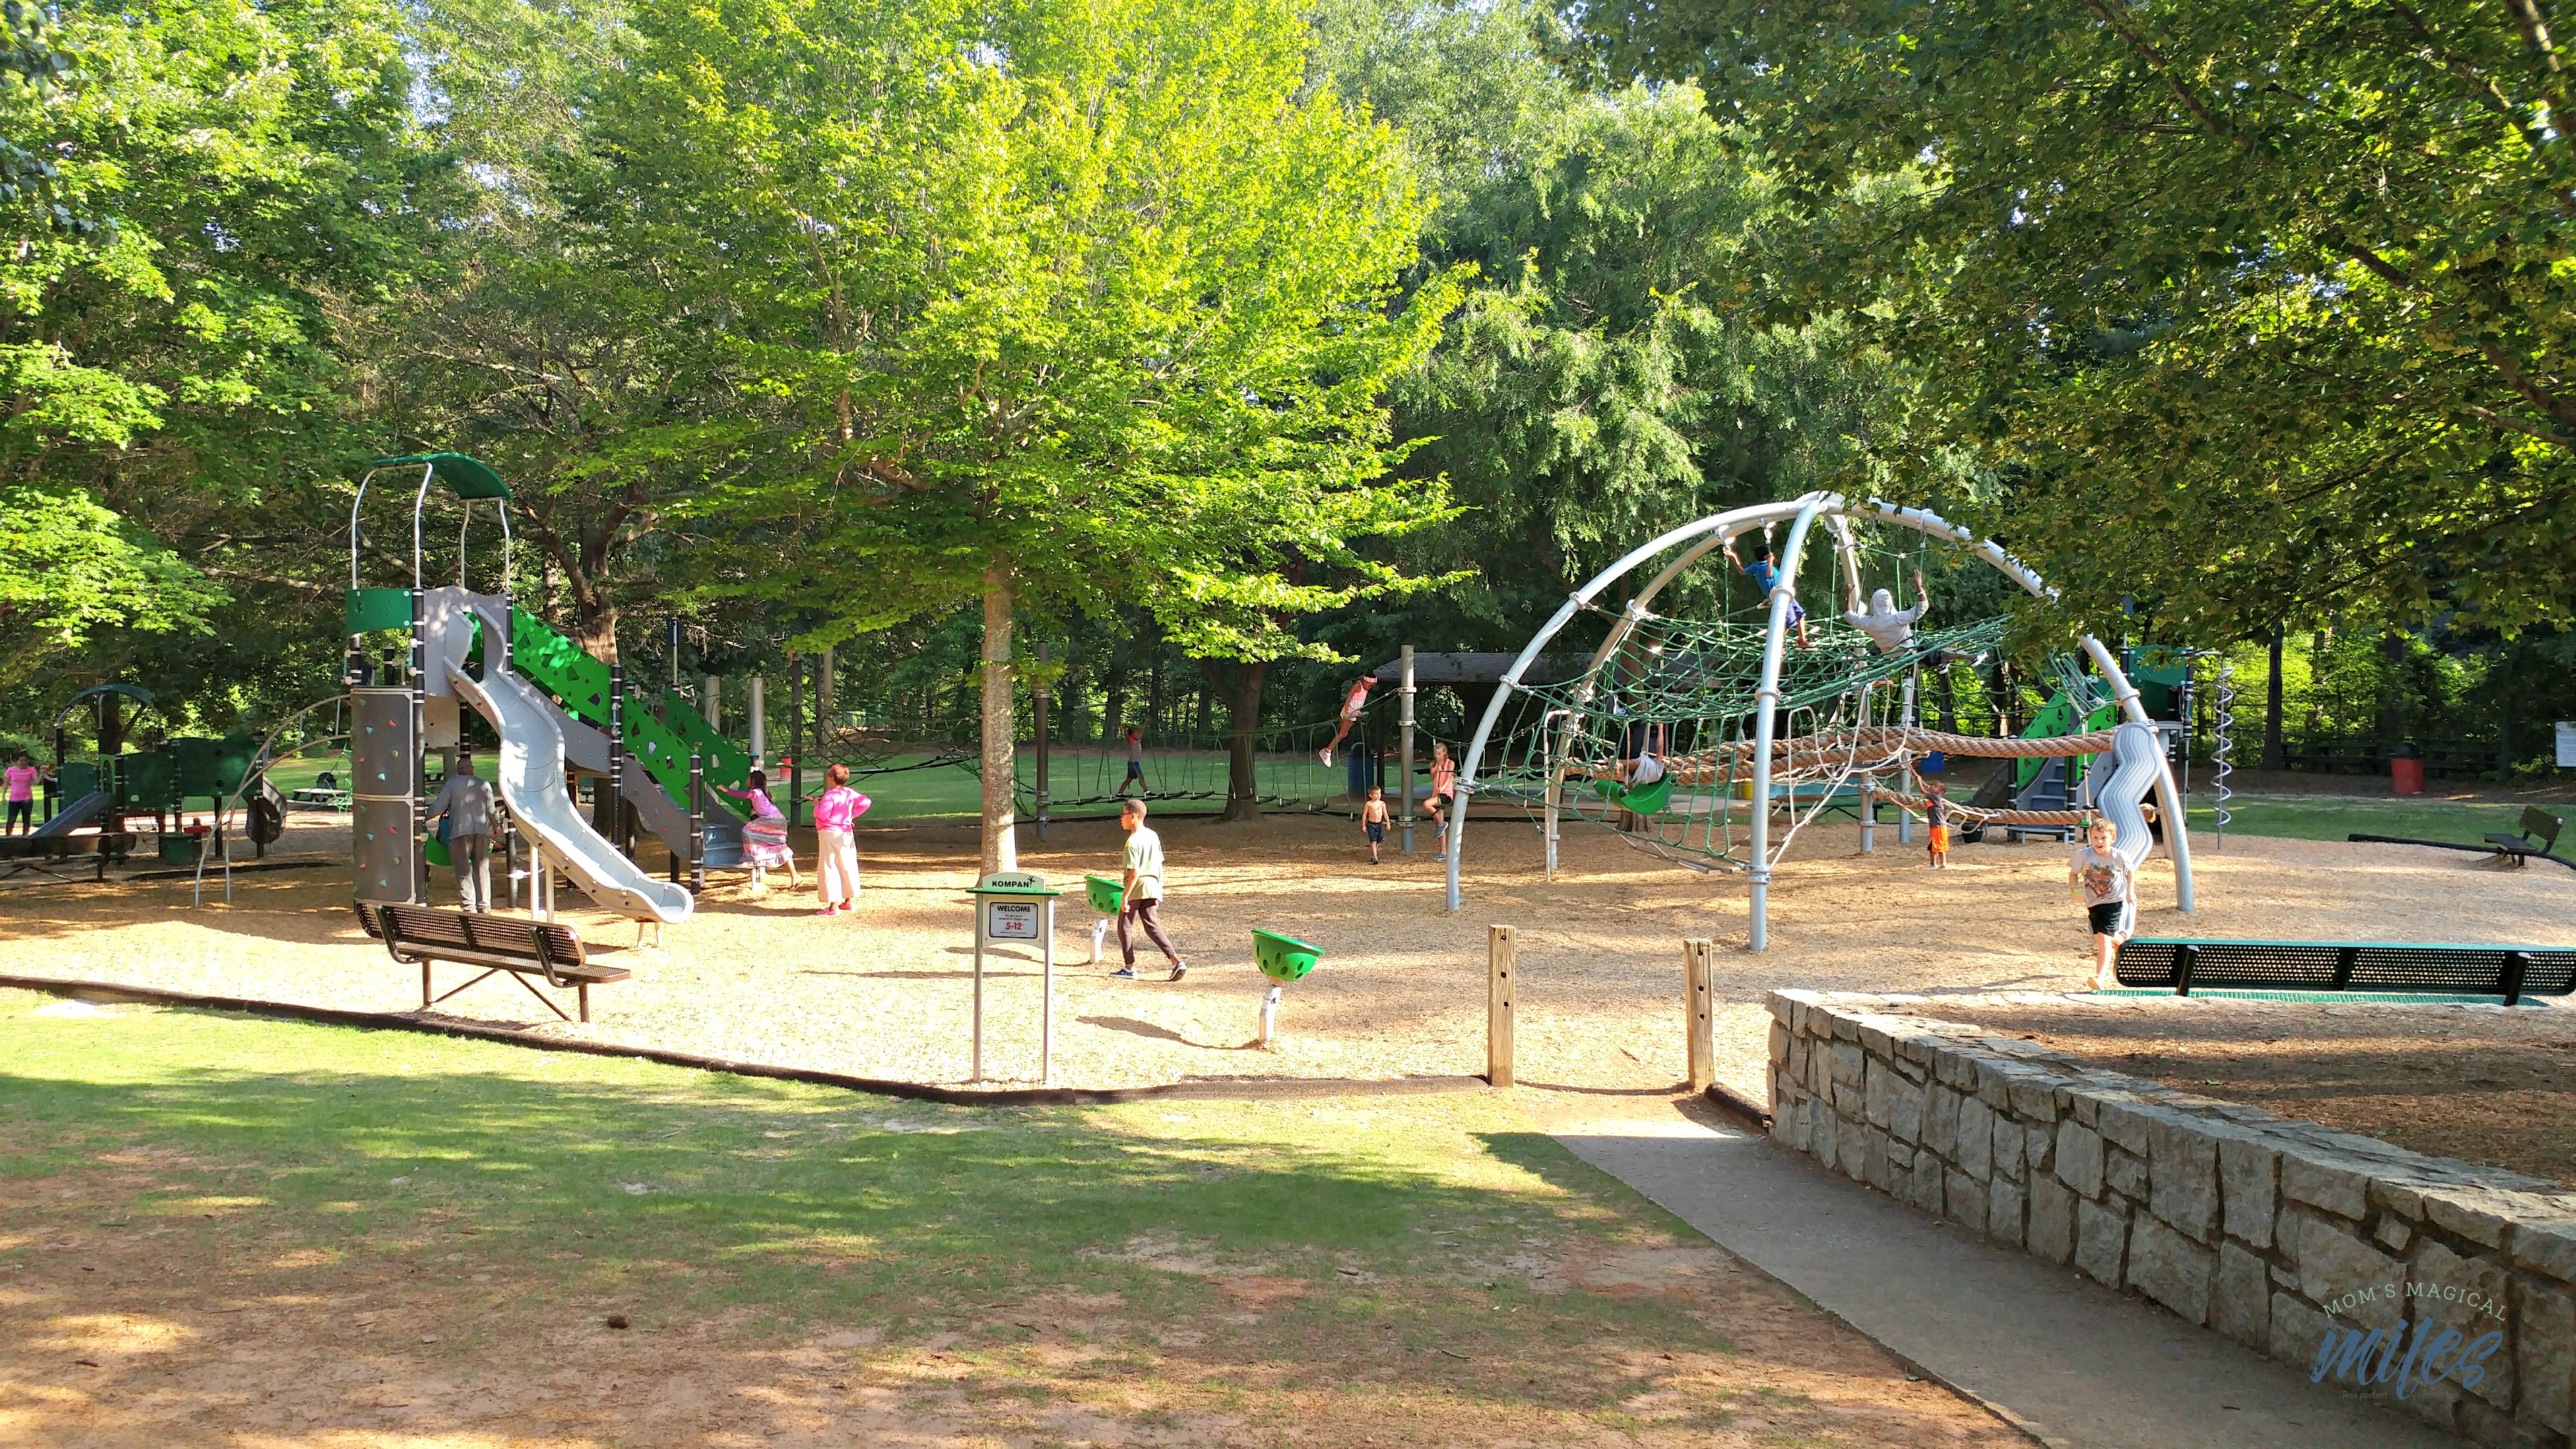 One of the most fun free things to do at Stone Mountain Park is the Children's Playground!